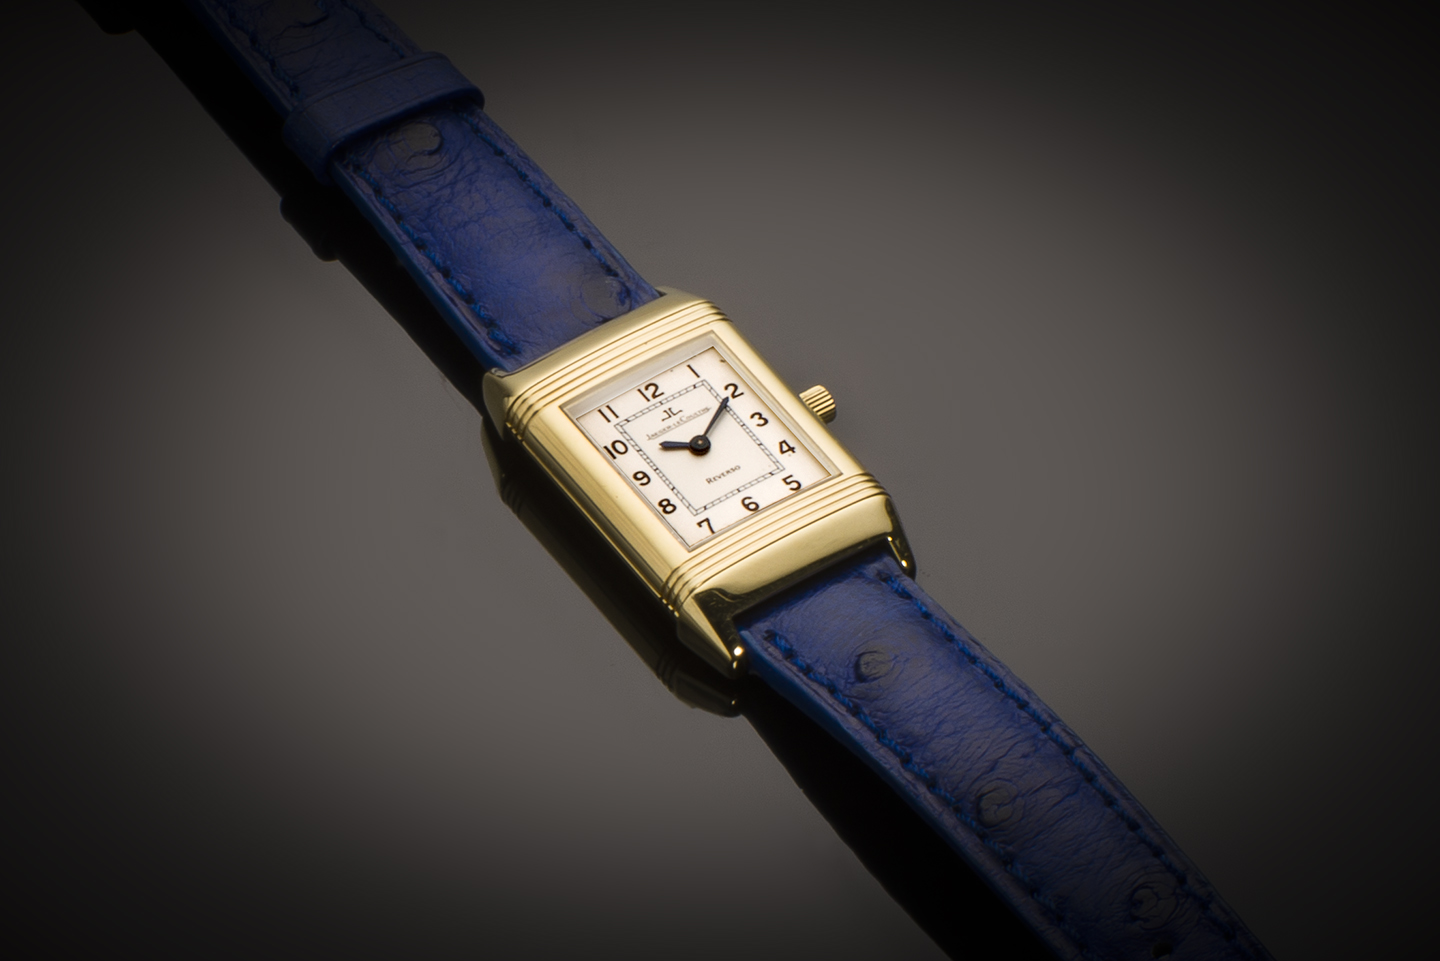 Montre Jaeger LeCoultre Reverso Lady or-1